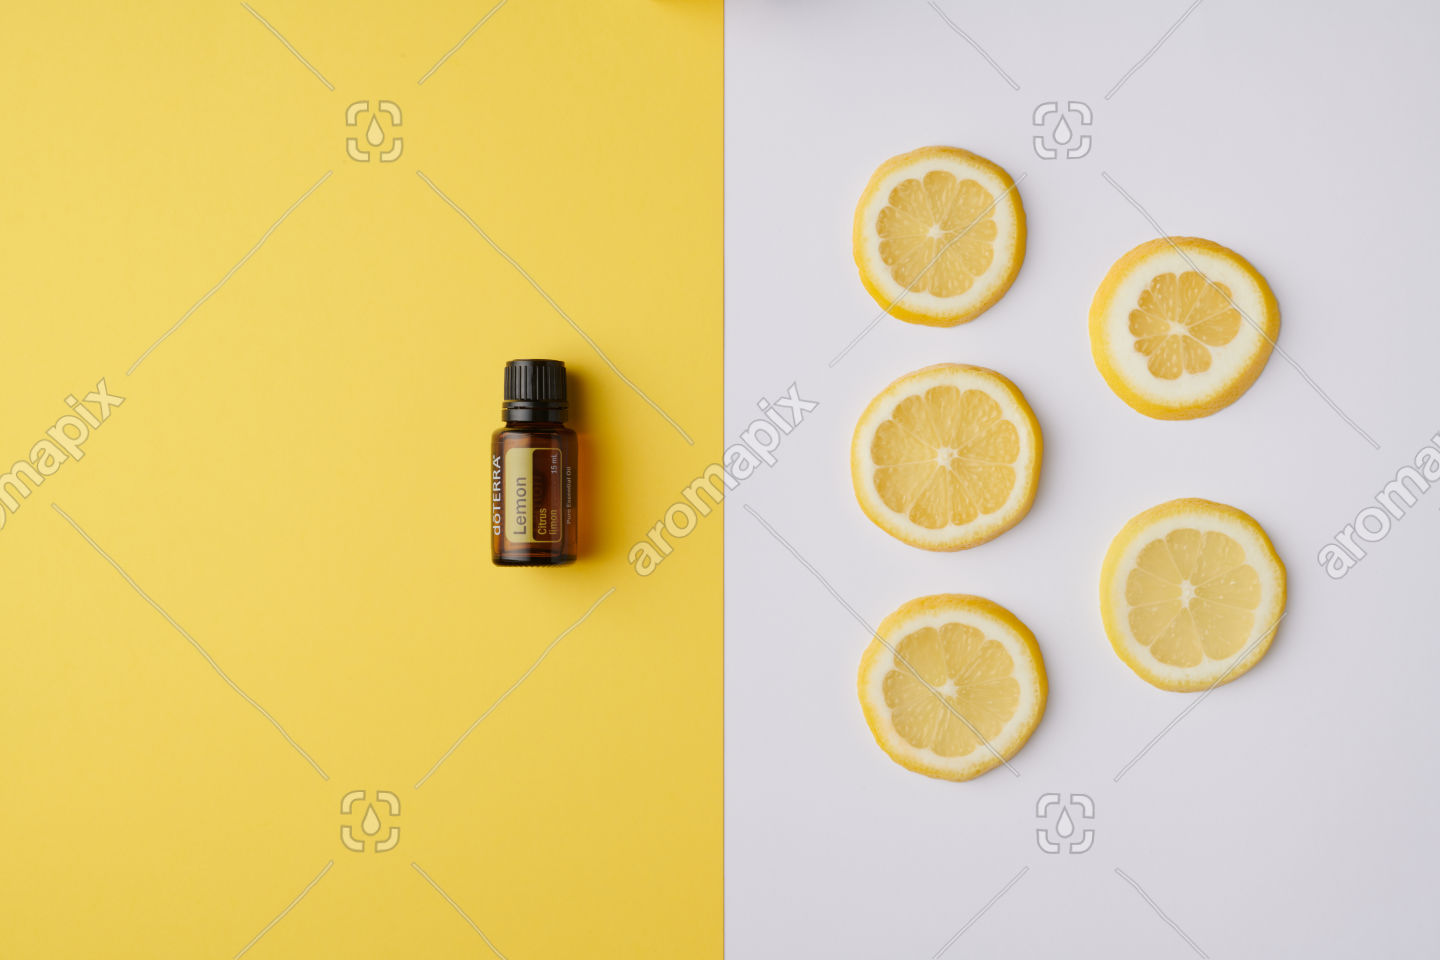 doTERRA Lemon product and slices on yellow and white background